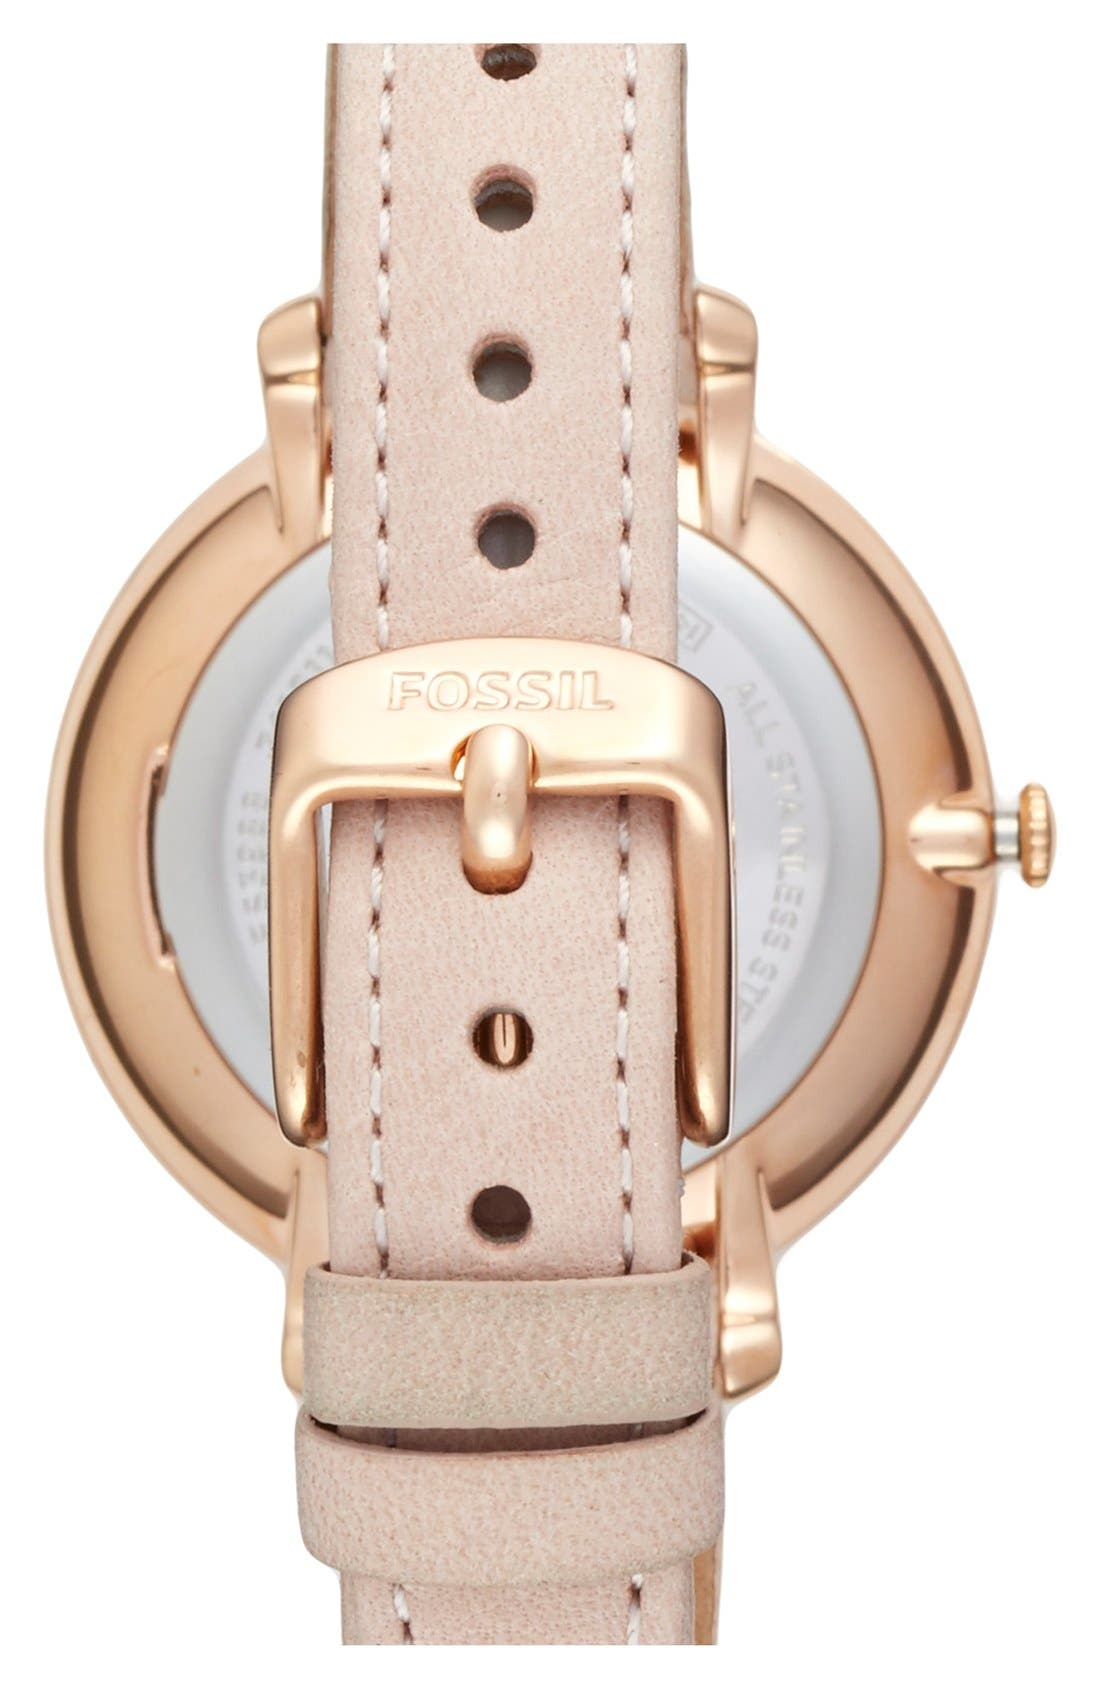 FOSSIL, 'Jacqueline' Leather Strap Watch, 36mm, Alternate thumbnail 2, color, BLUSH/ WHITE